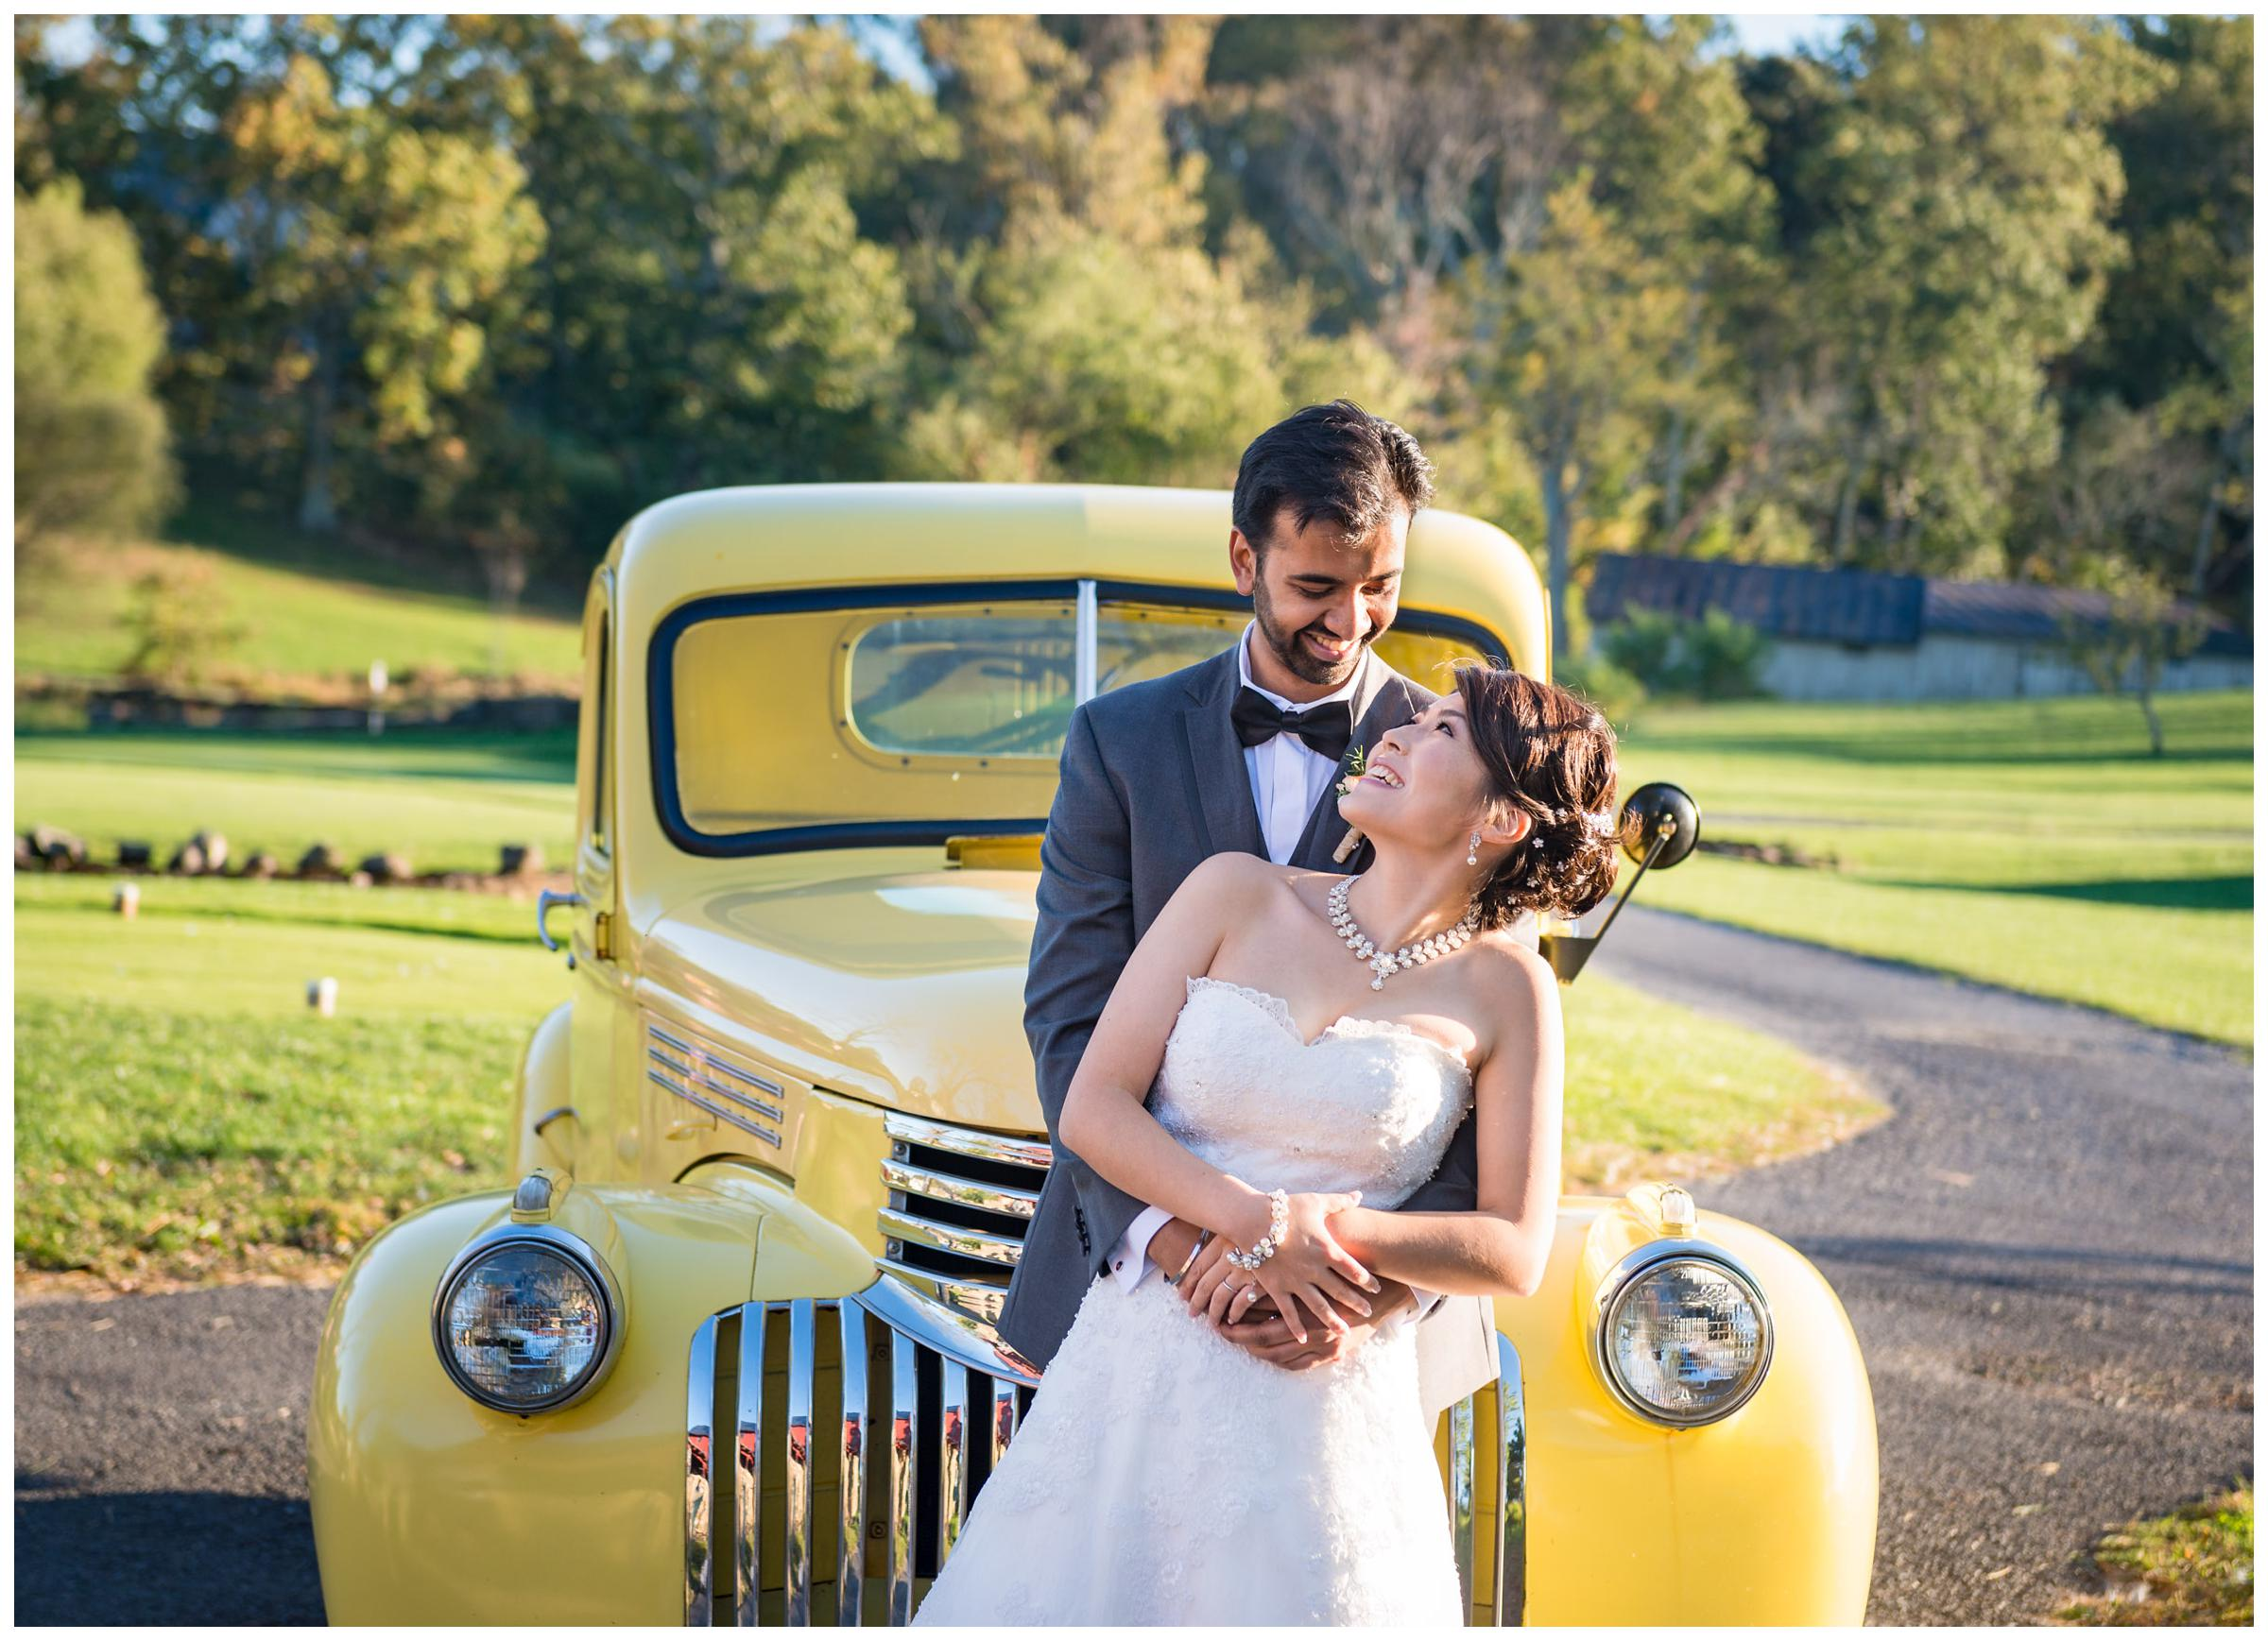 Bride and groom with vintage yellow truck during rustic wedding at Stoneleigh Golf Club